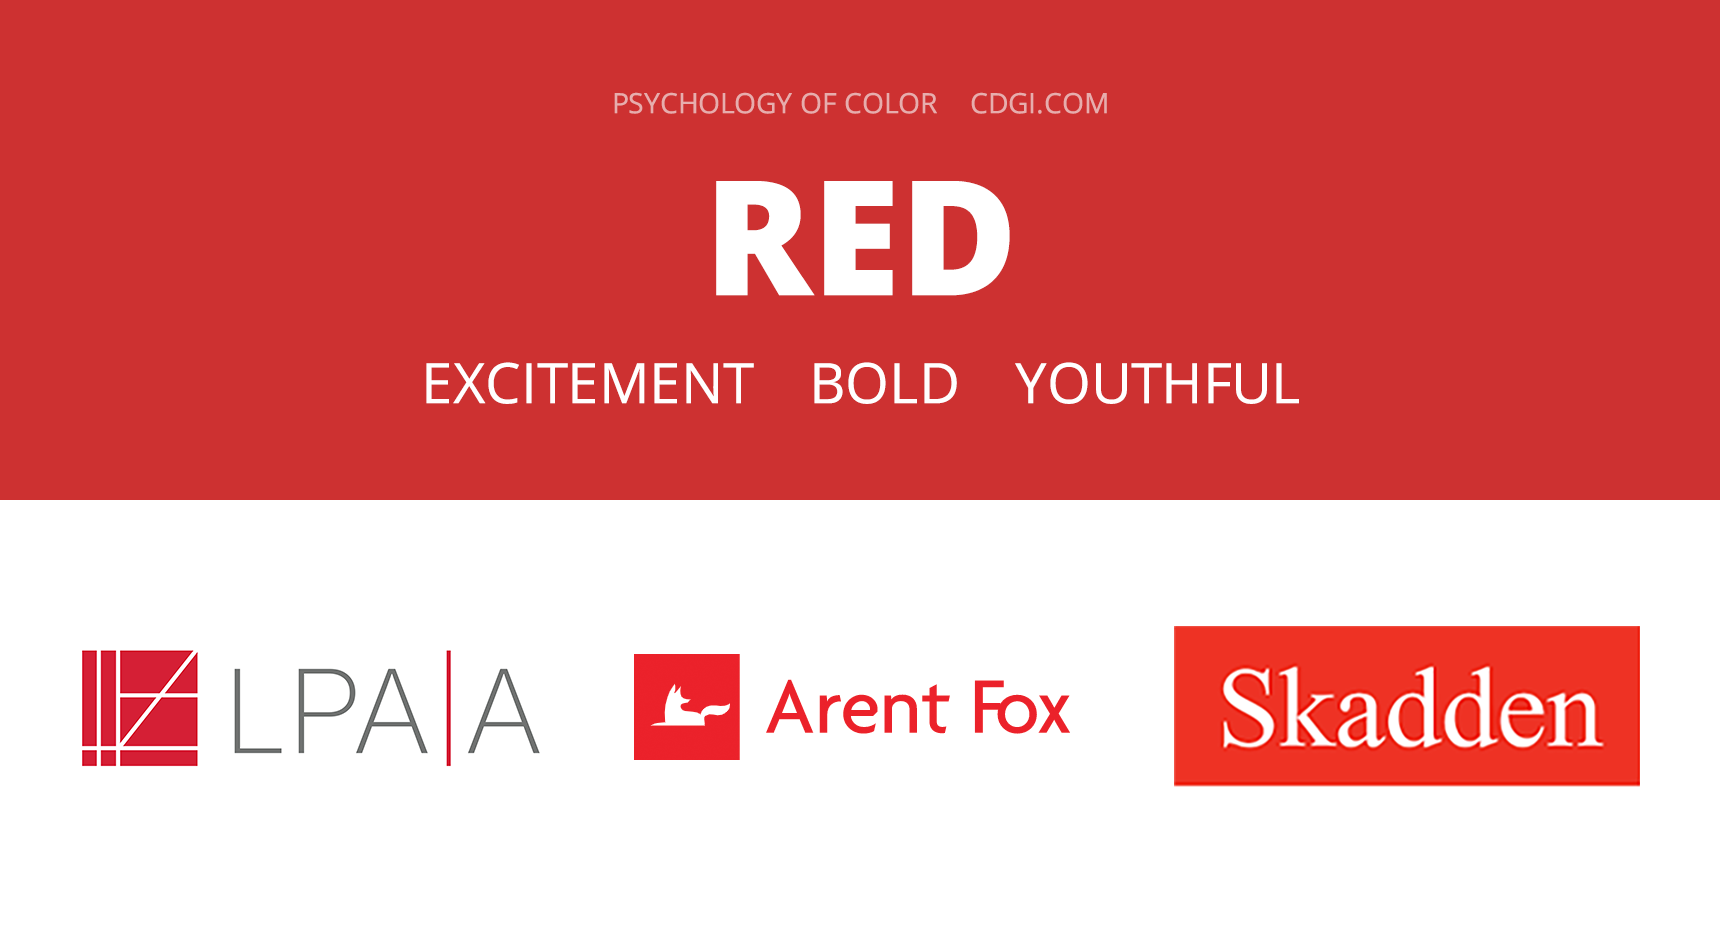 Red: Excitement, Bold, Youthful